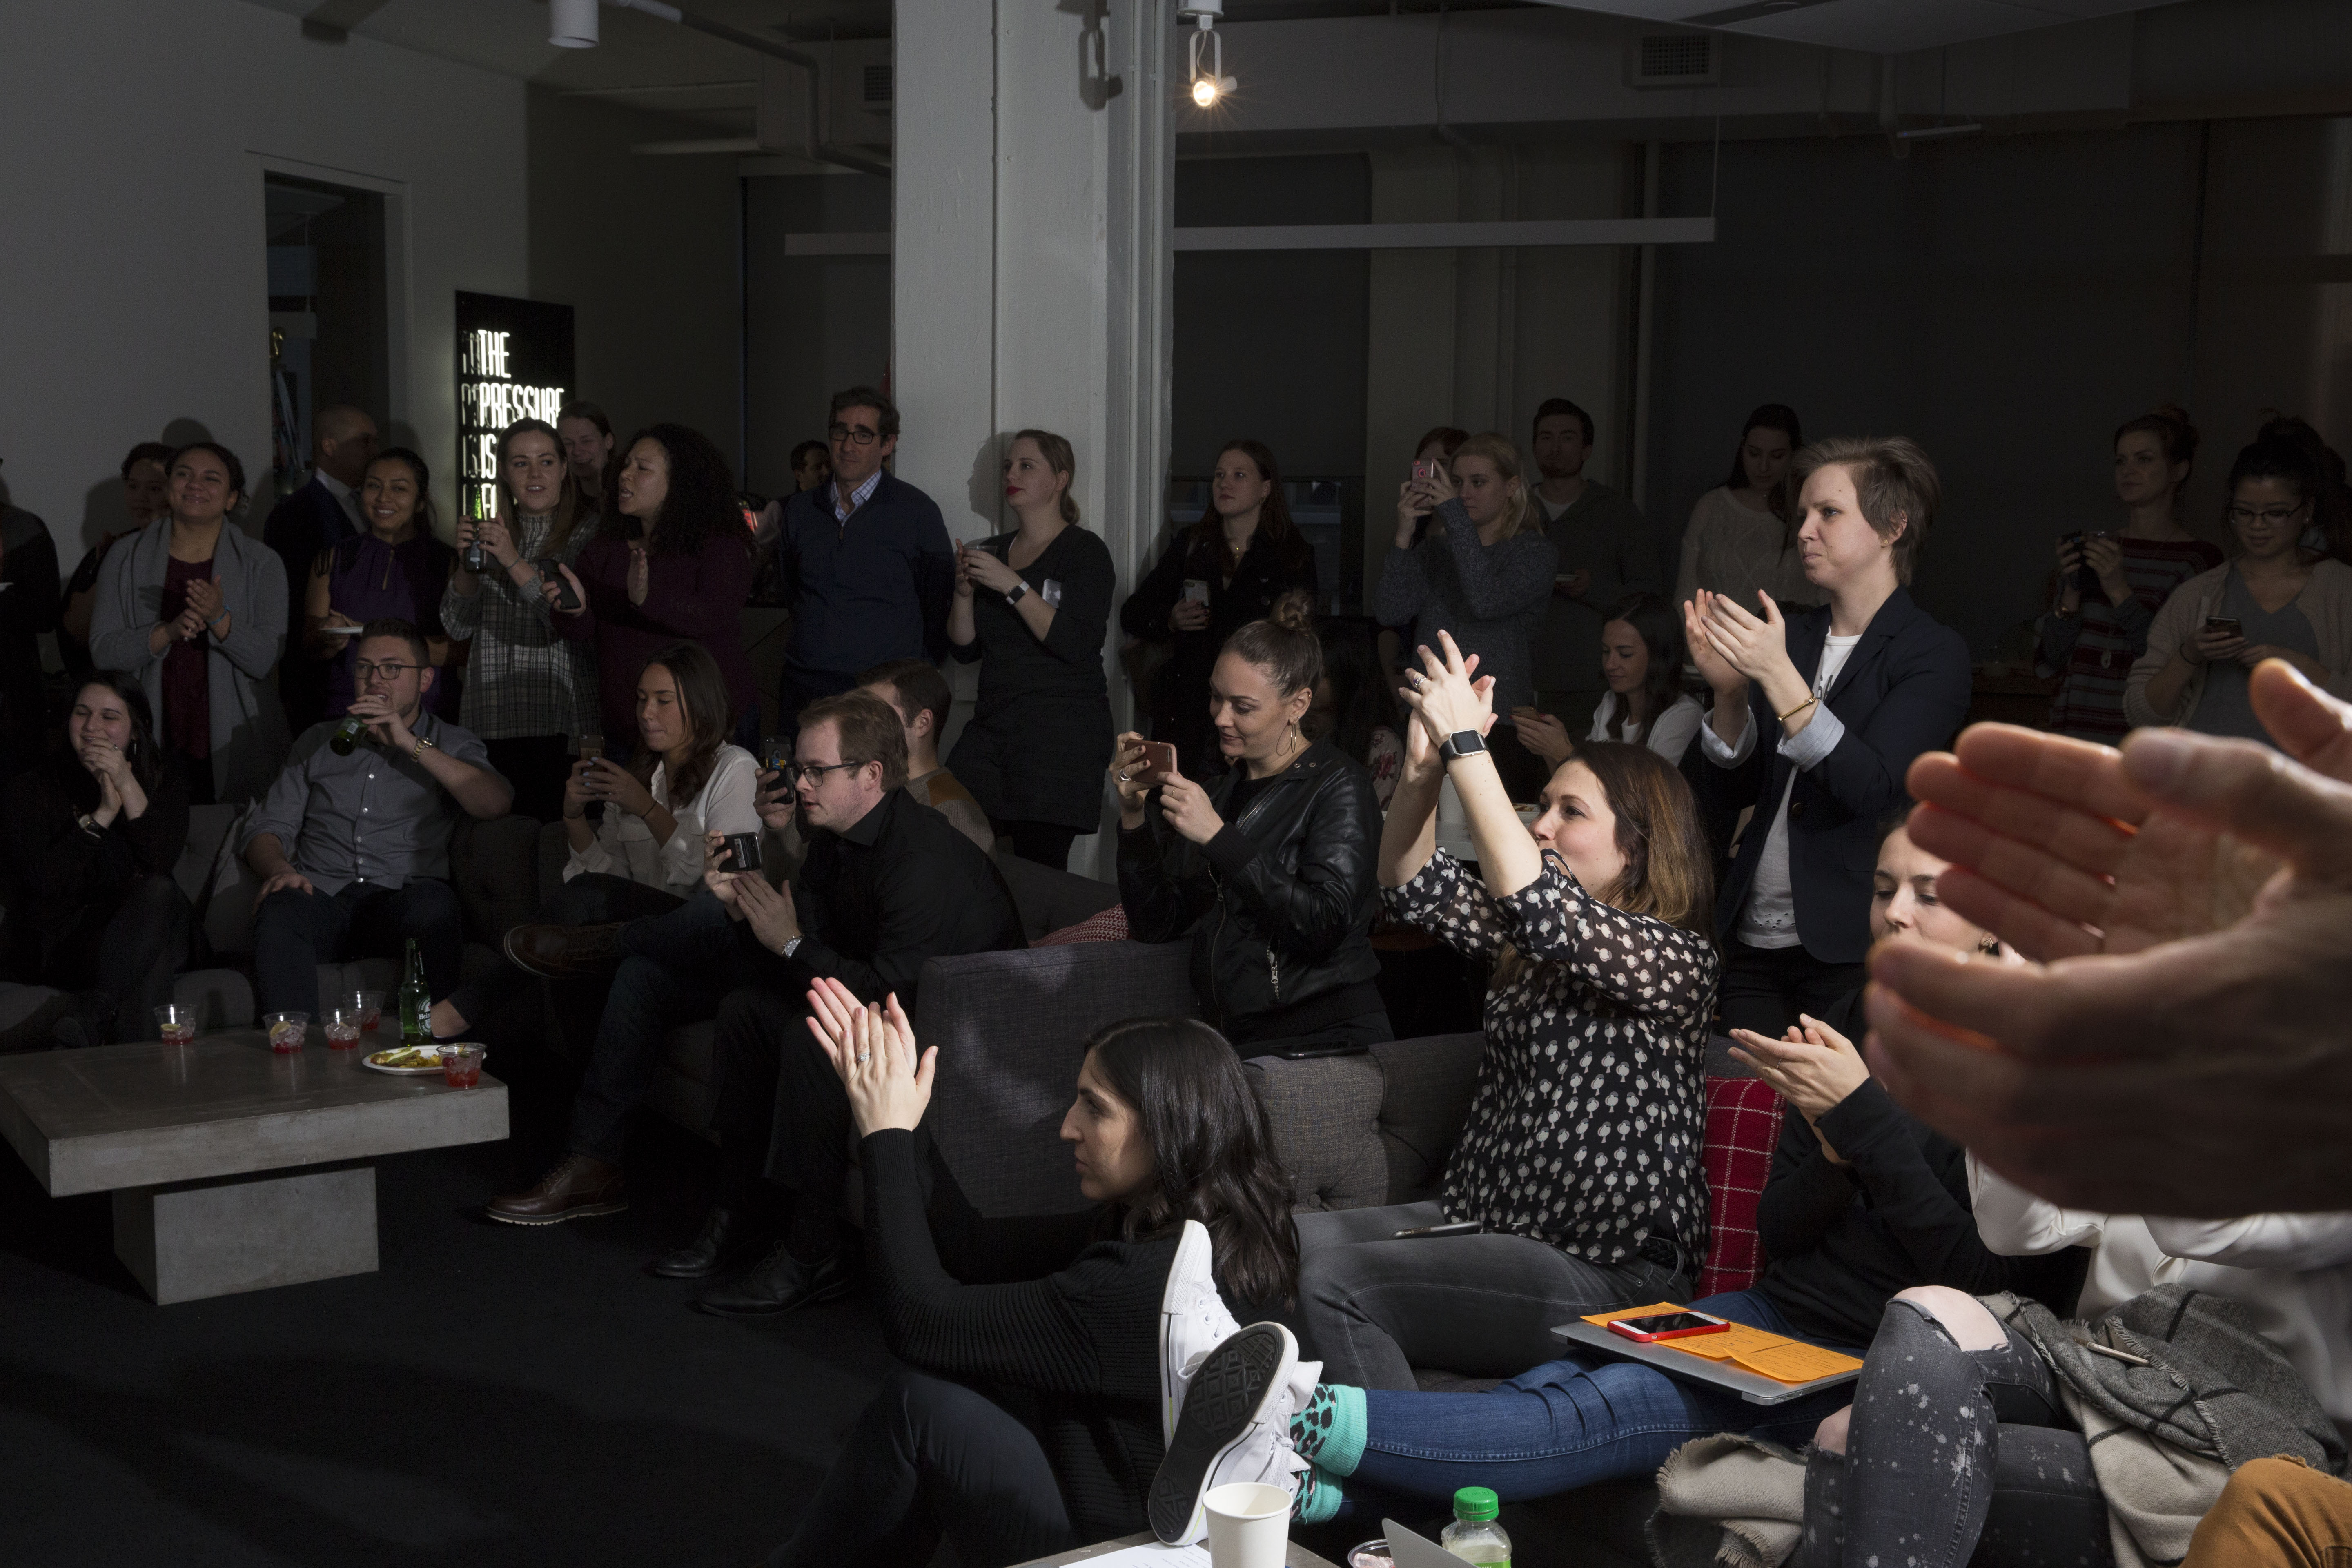 Havas New York creatives gather for Starley's Havas Sessions performance